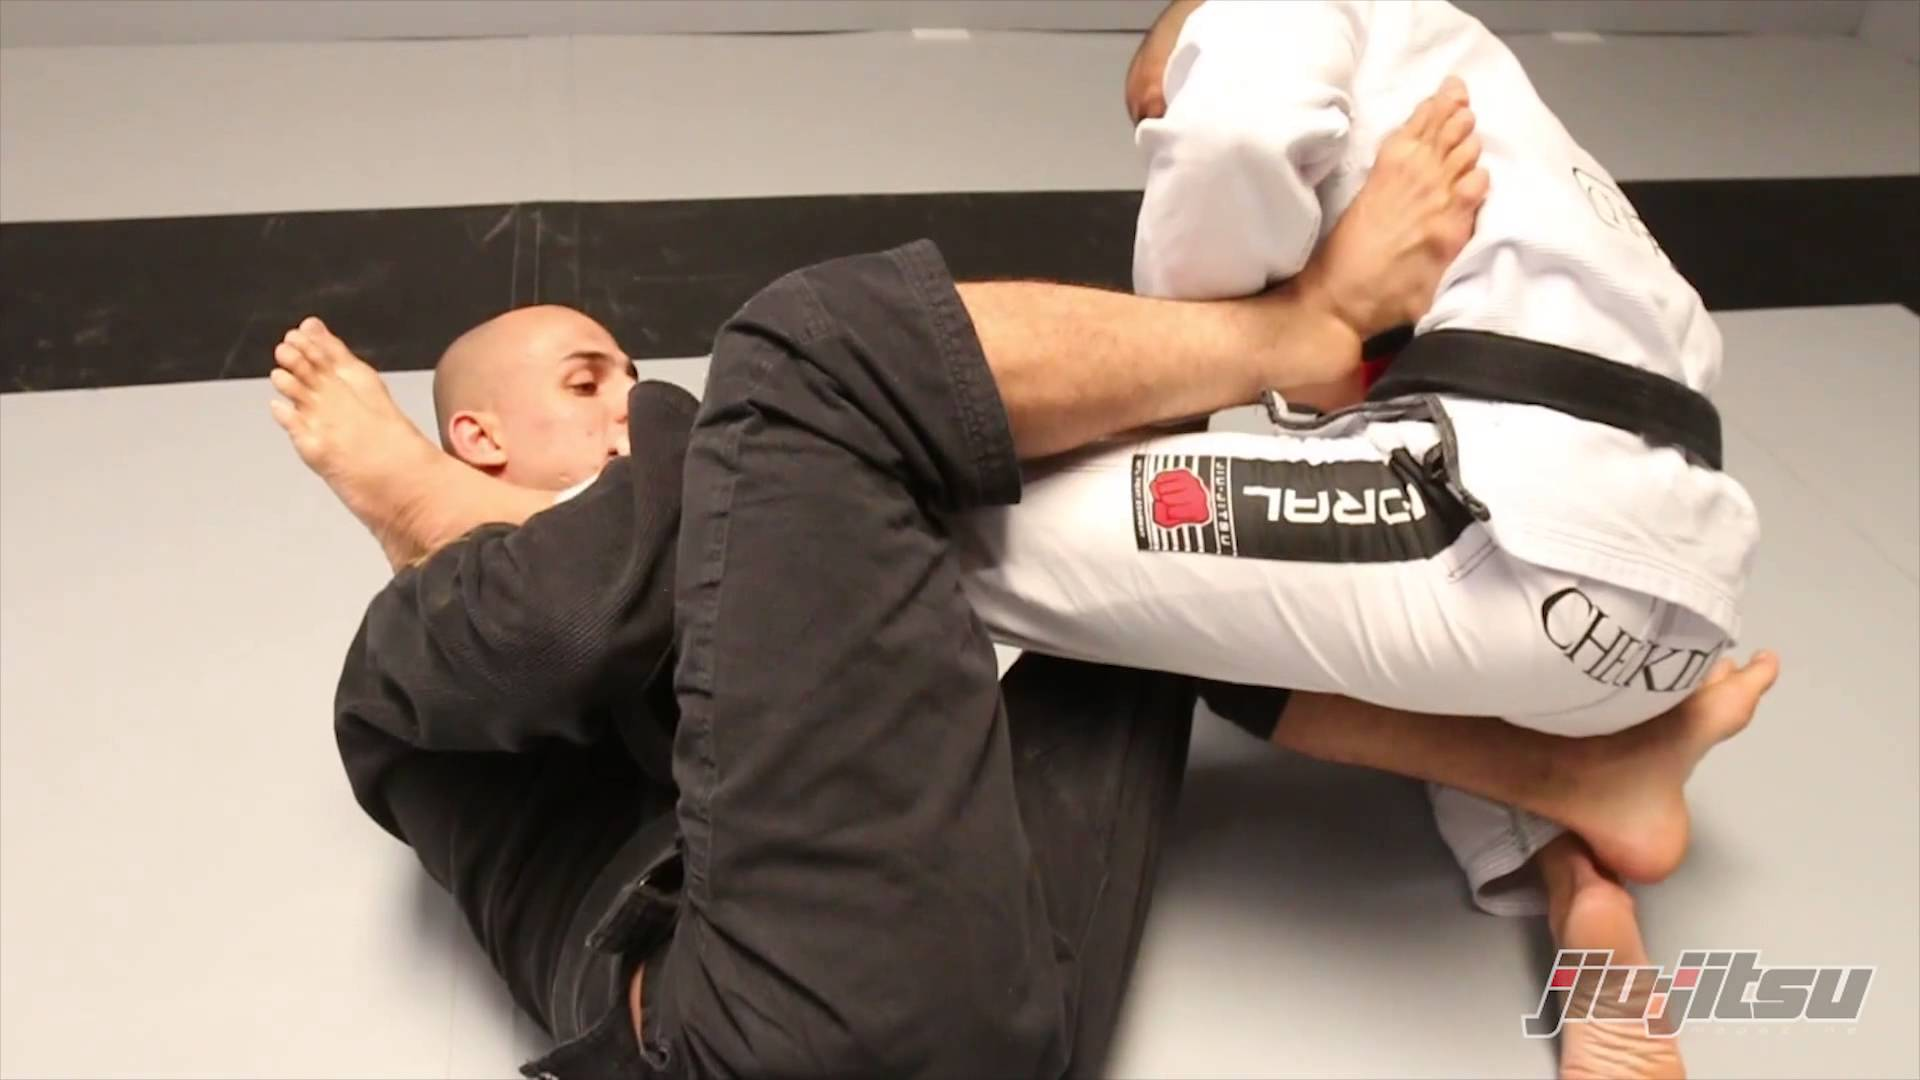 Back take from Knee shield and X-guard